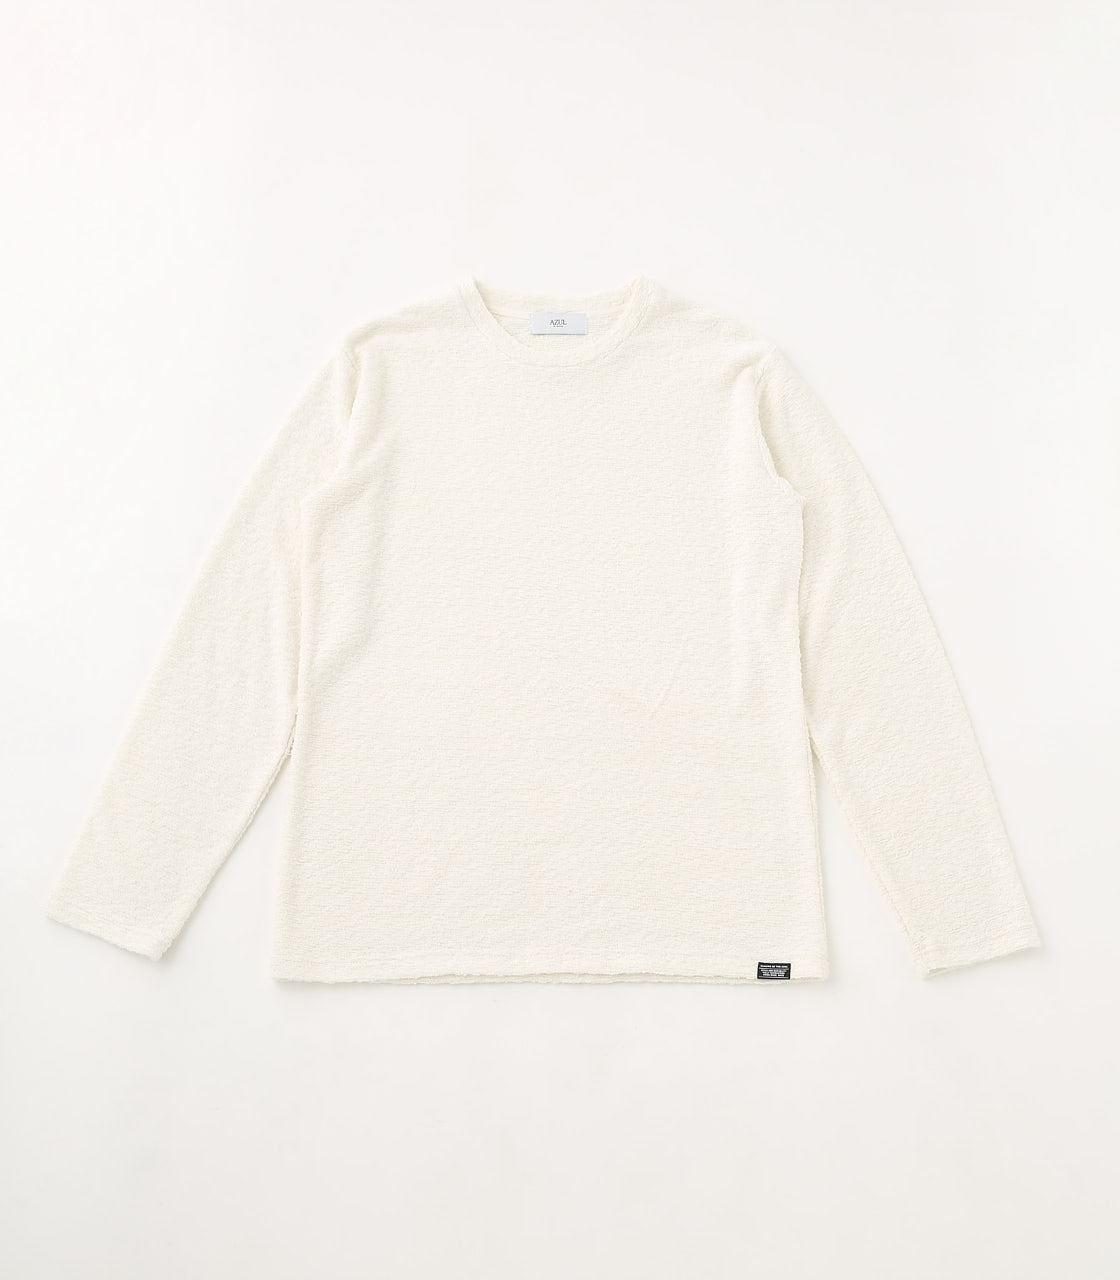 【AZUL BY MOUSSY】BIG PILE LONG SLEEVE 詳細画像 WHT 1